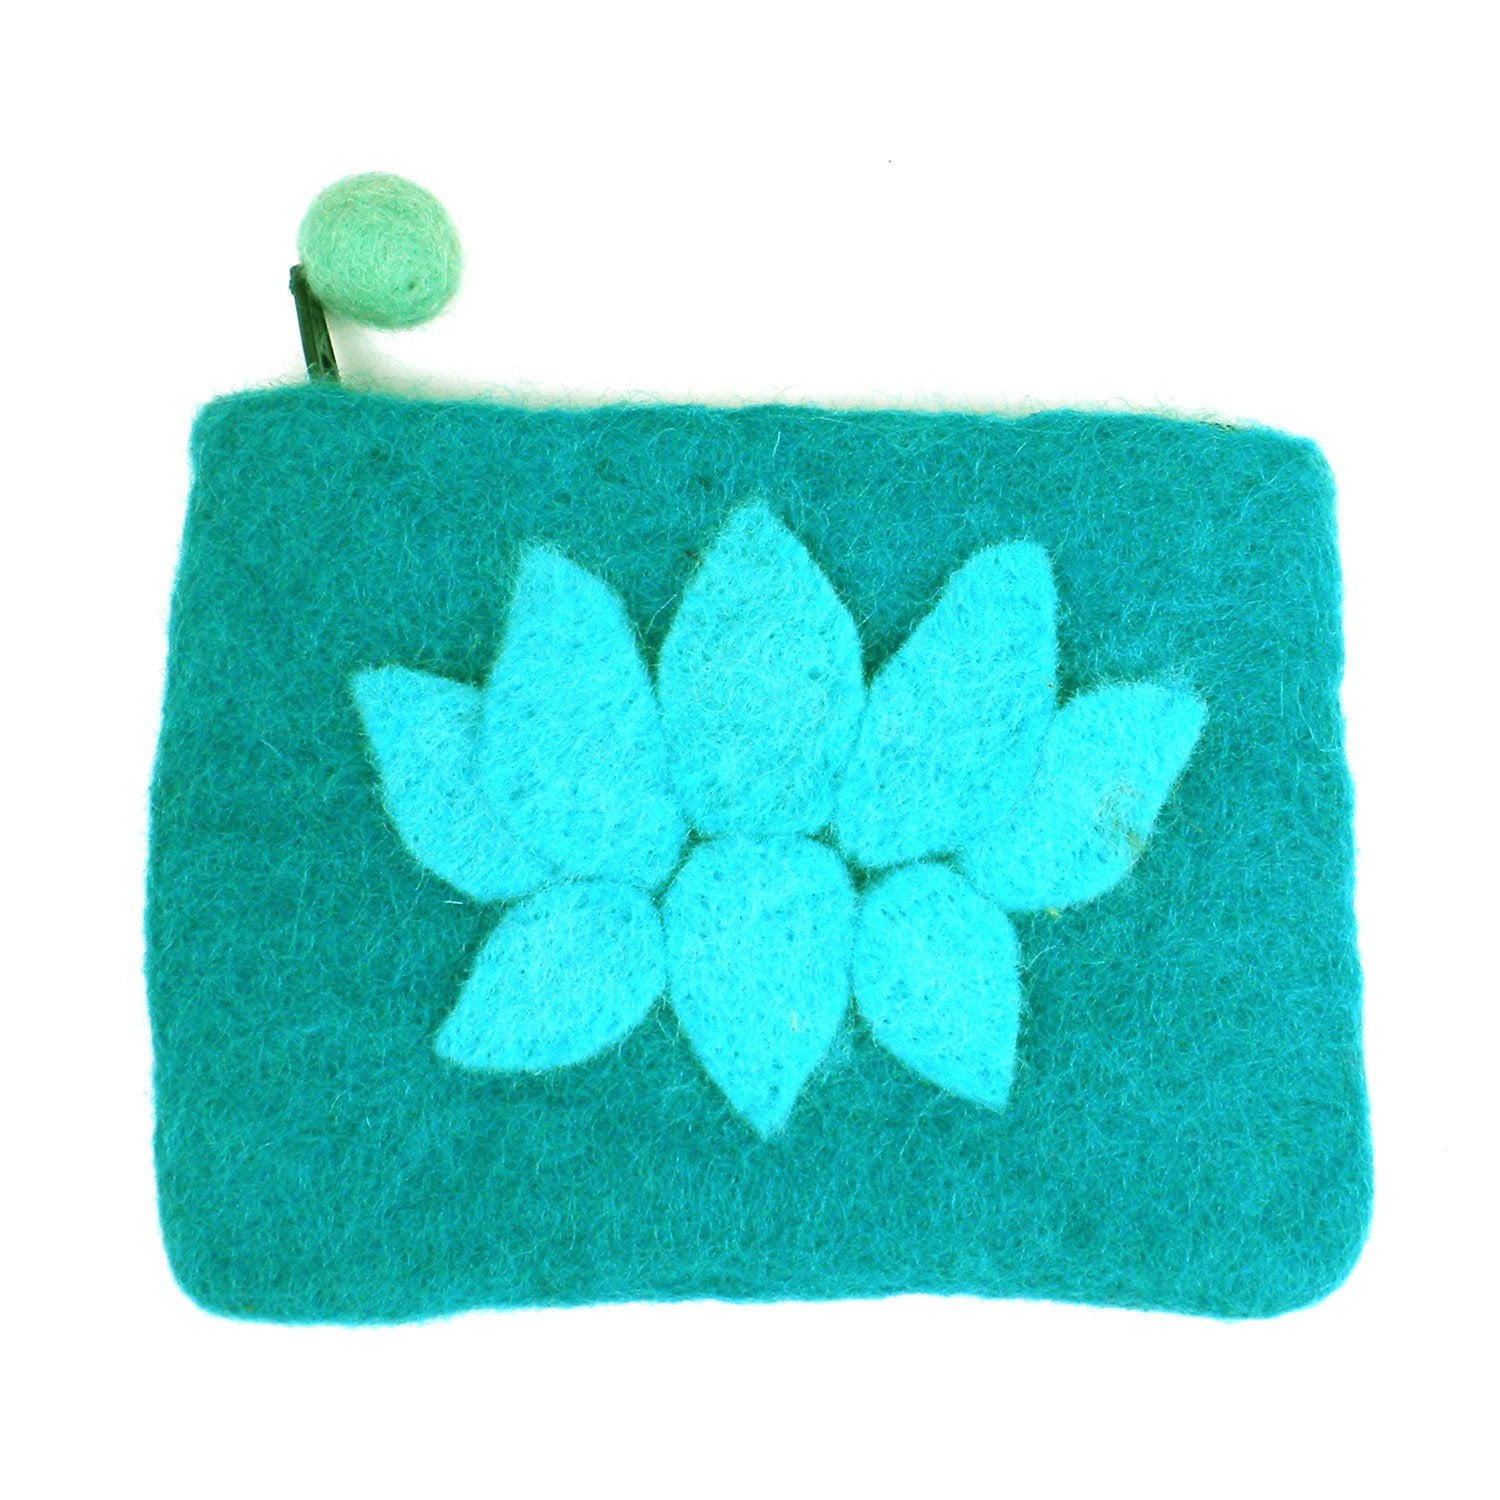 Lotus Flower Felt Coin Purse - Turquoise